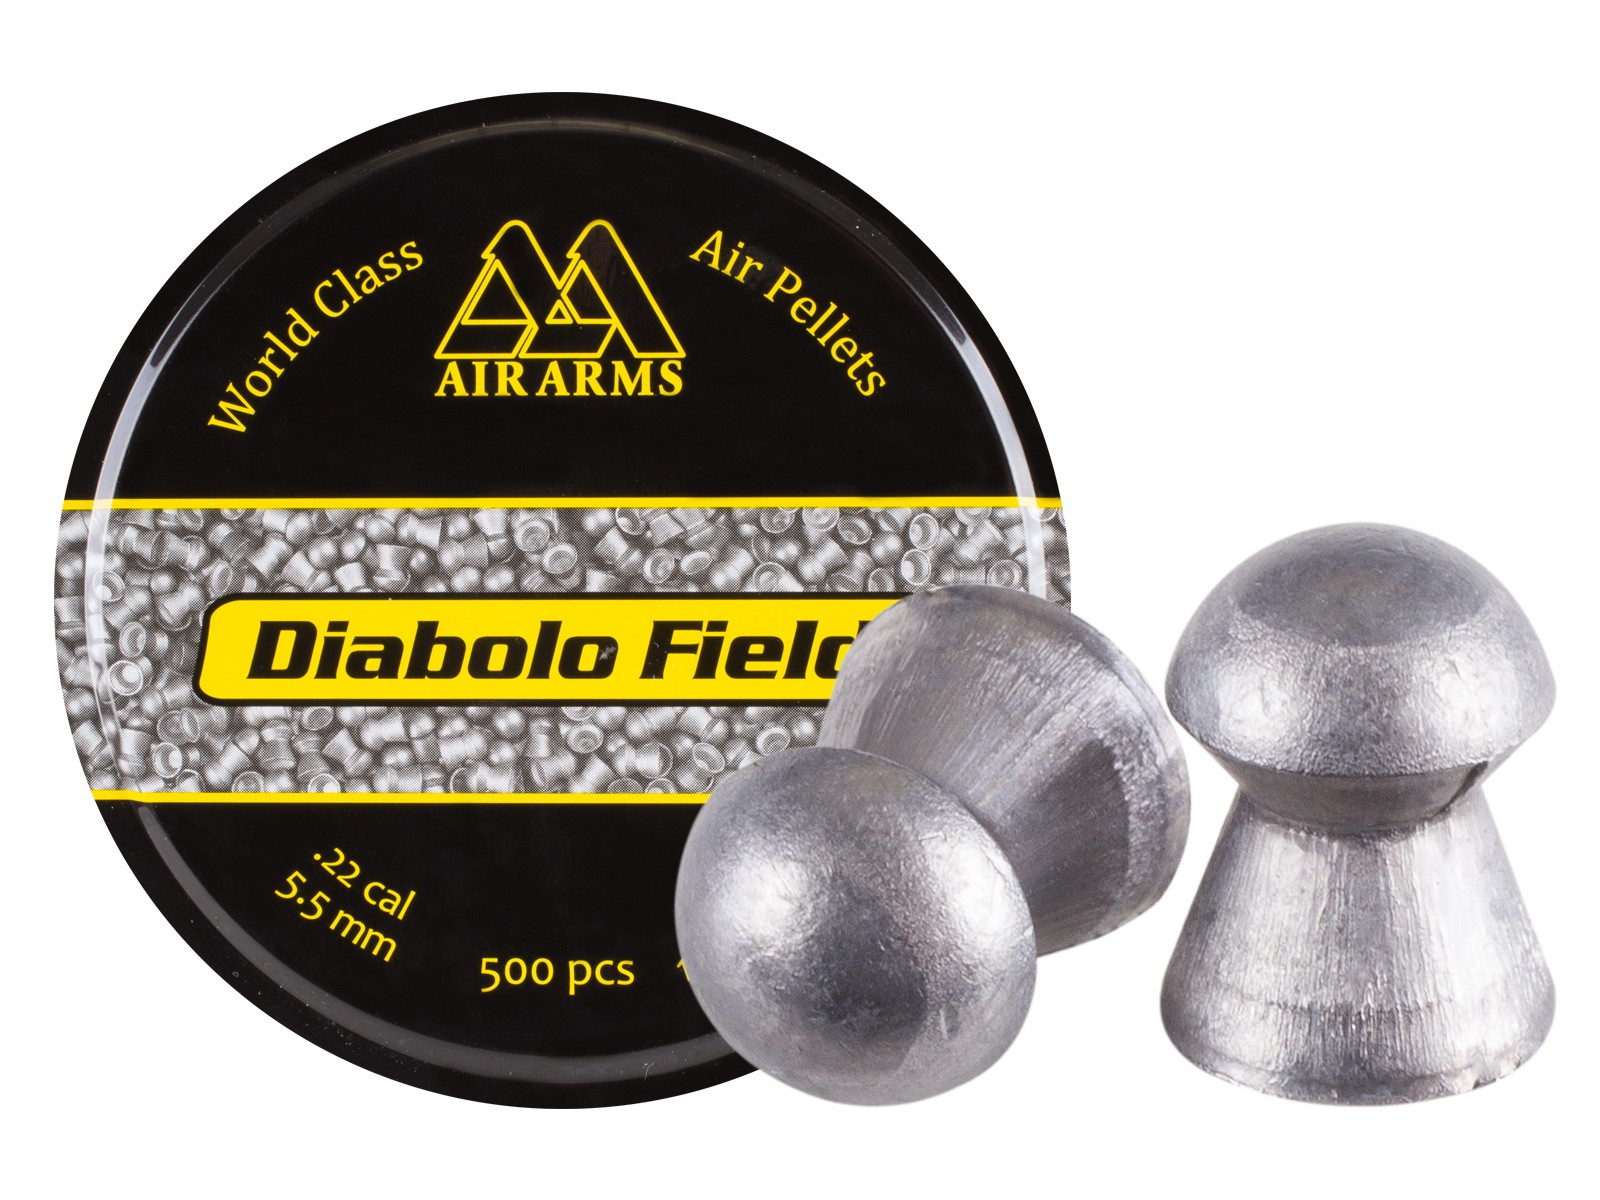 Air Arms Diabolo Field .22 Cal